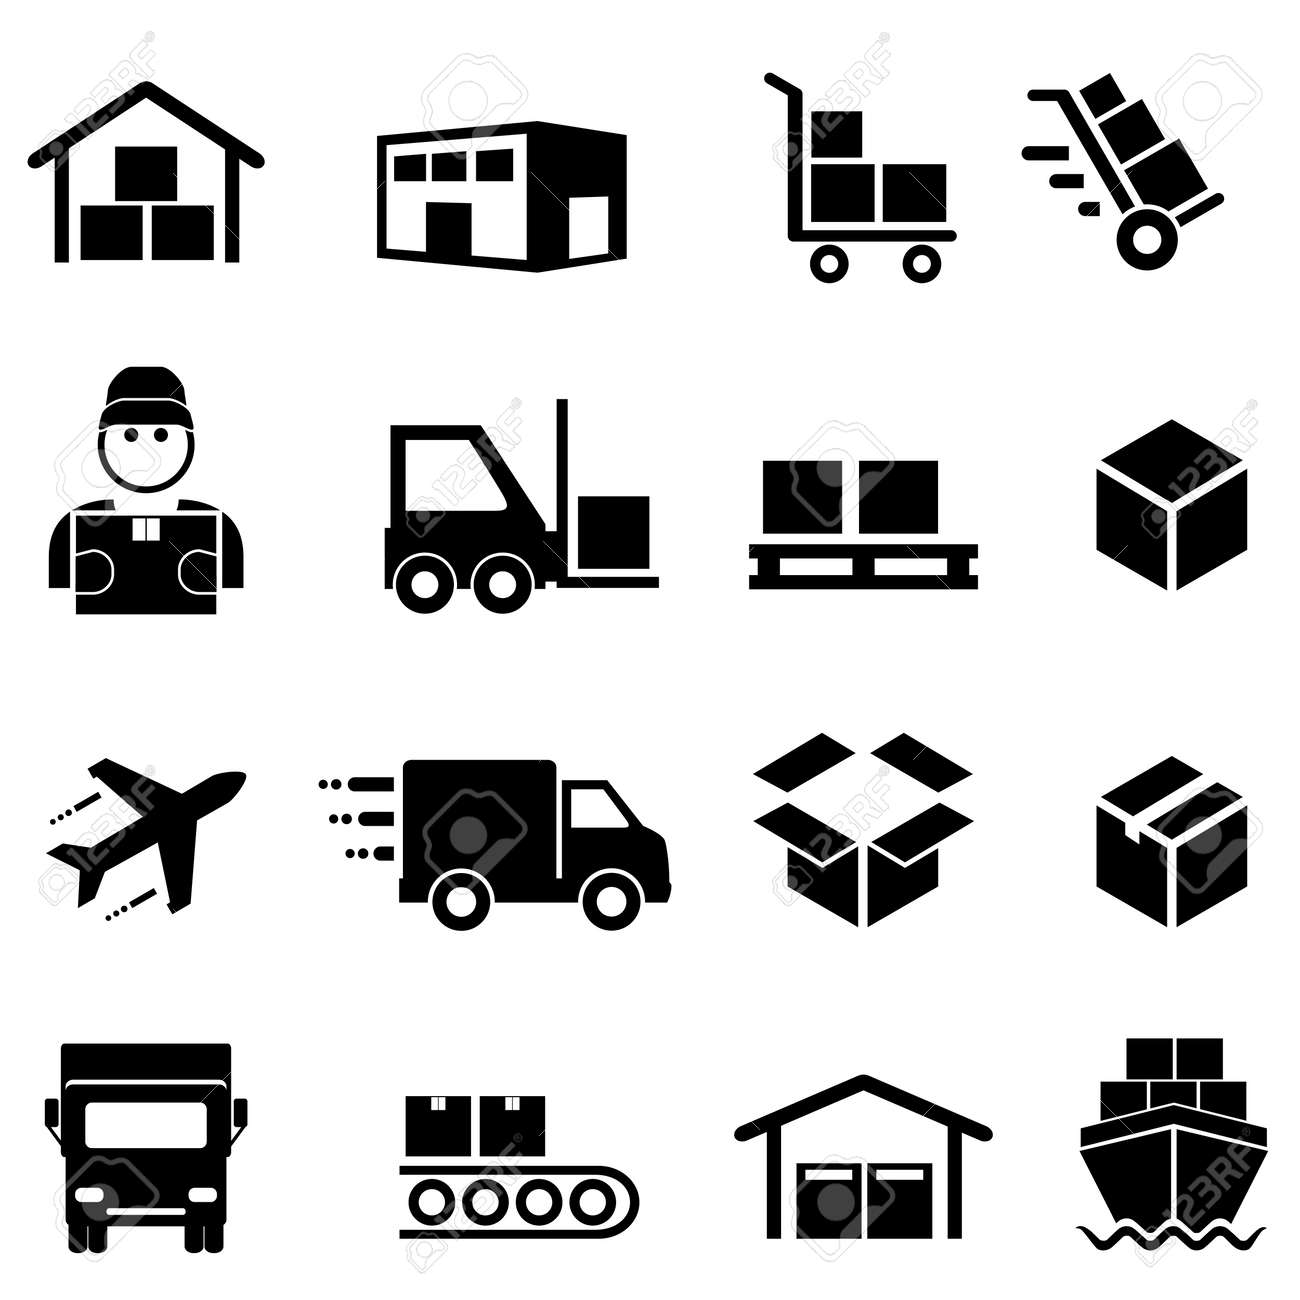 Shipping, freight, cargo, delivery, distribution and logistics icon set - 69048931